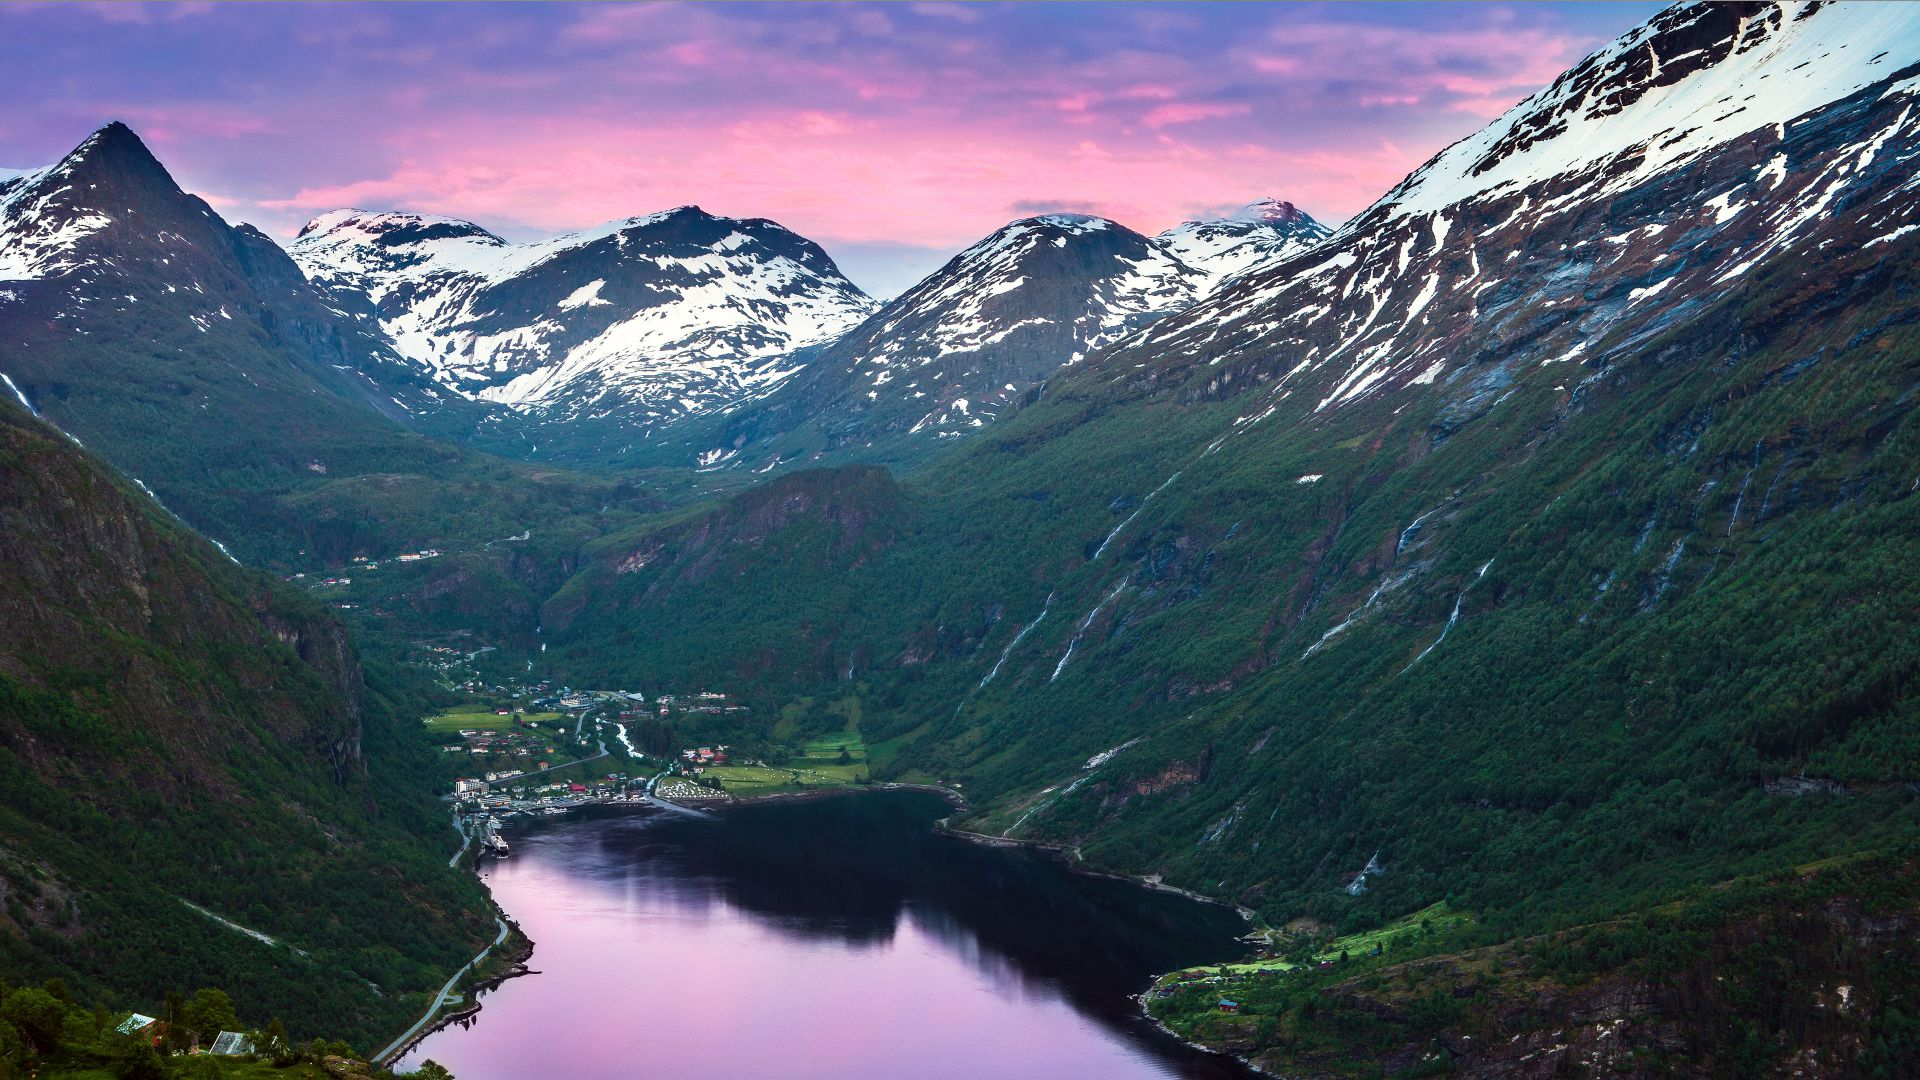 Норвегия, фьорд, горы, река, небо, Norway, fjord, mountains, river, sky